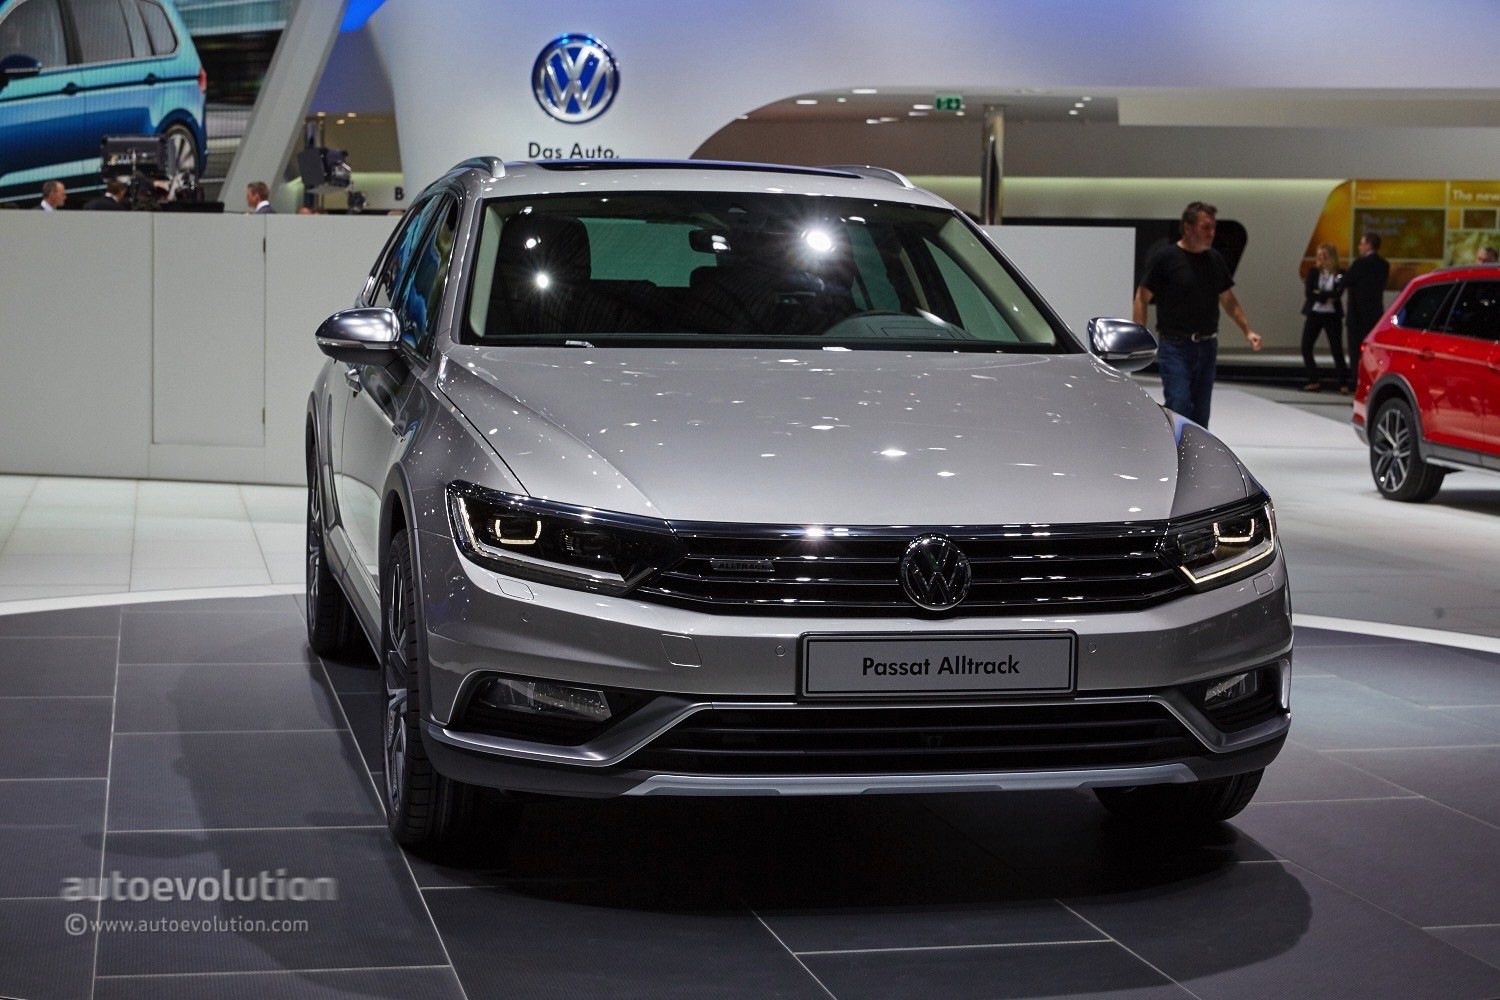 2015 volkswagen passat alltrack makes a first appearance in the metal at geneva autoevolution. Black Bedroom Furniture Sets. Home Design Ideas